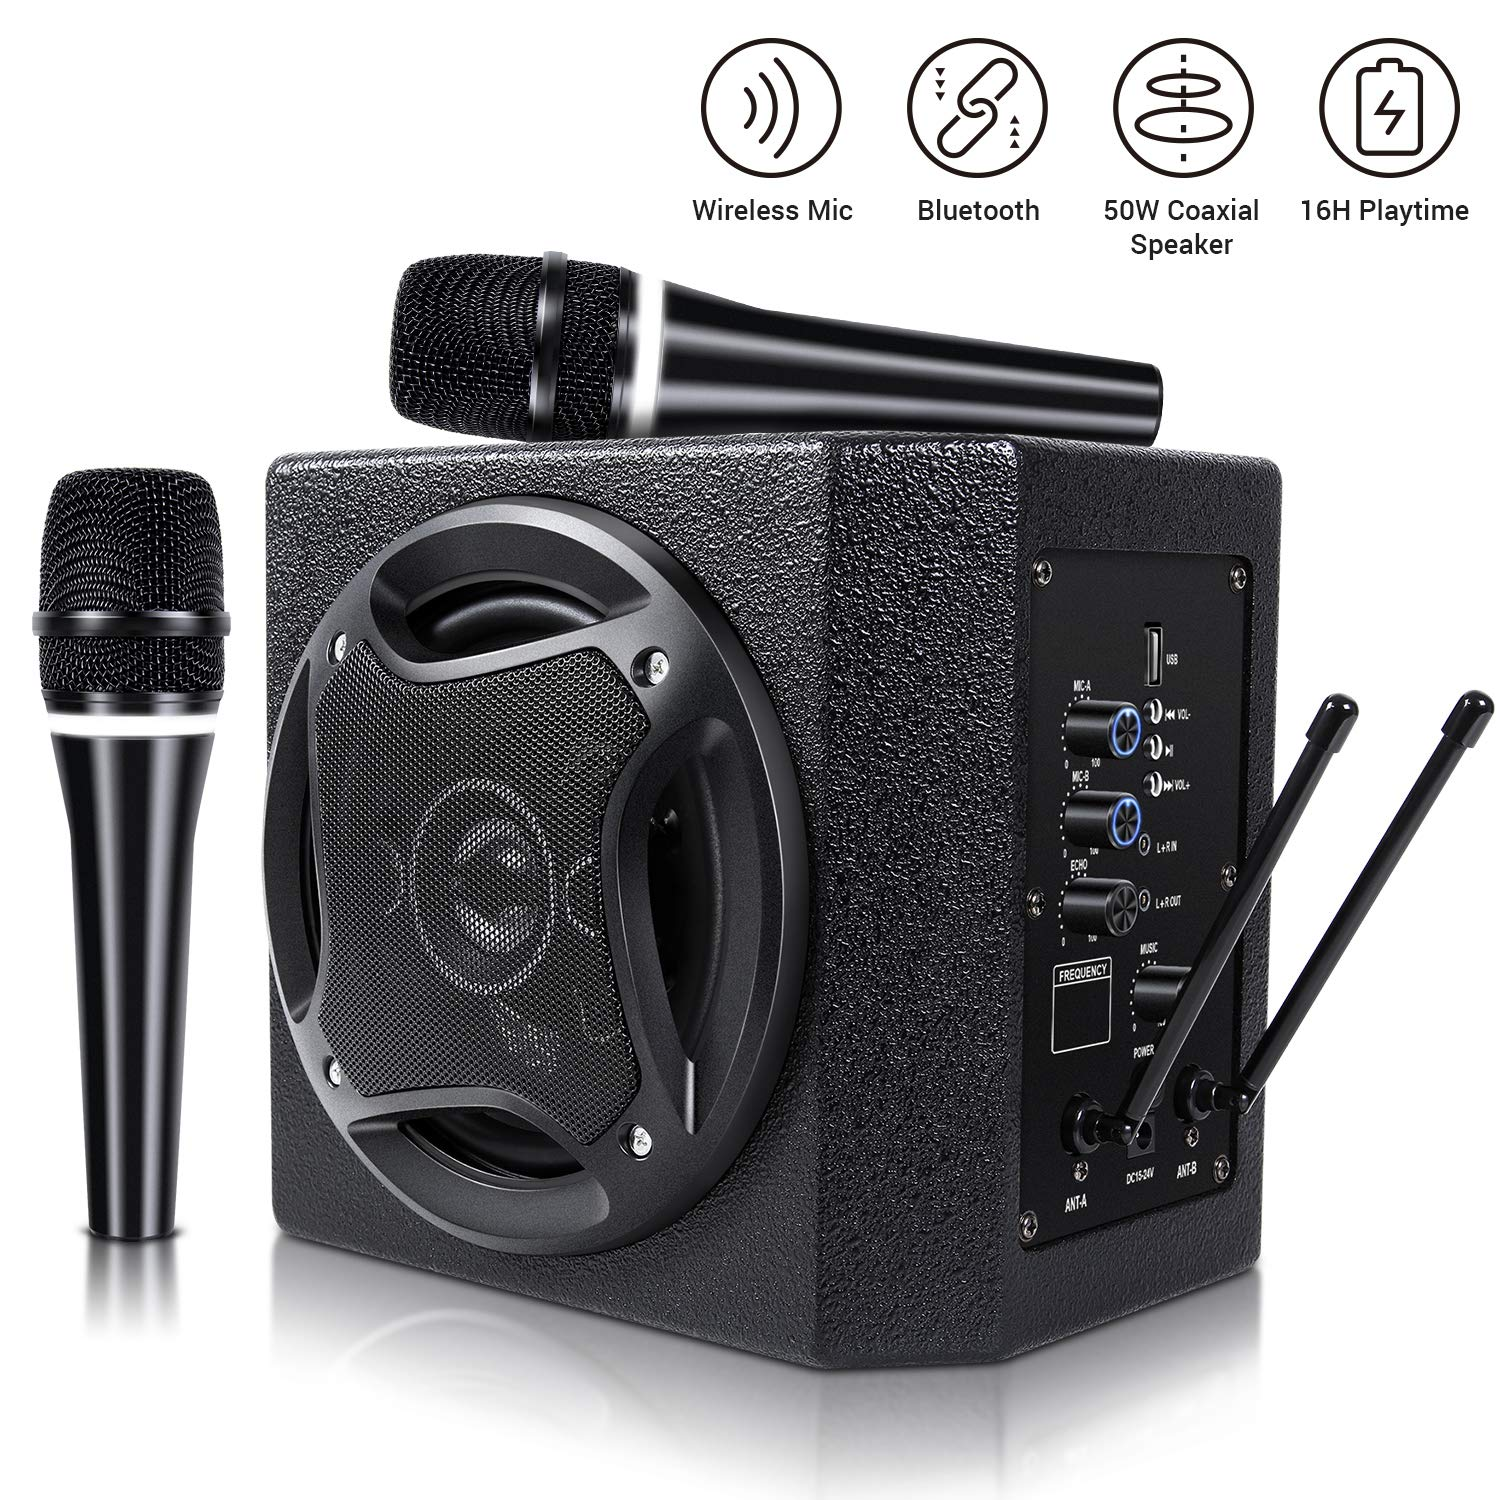 TONOR PA System Karaoke Machine with 50W Bluetooth Powered Speaker Wireless Microphones Handheld for Family Party, Indoor Meeting, Classroom Use, Public Speaking and Small Stage Performance by TONOR